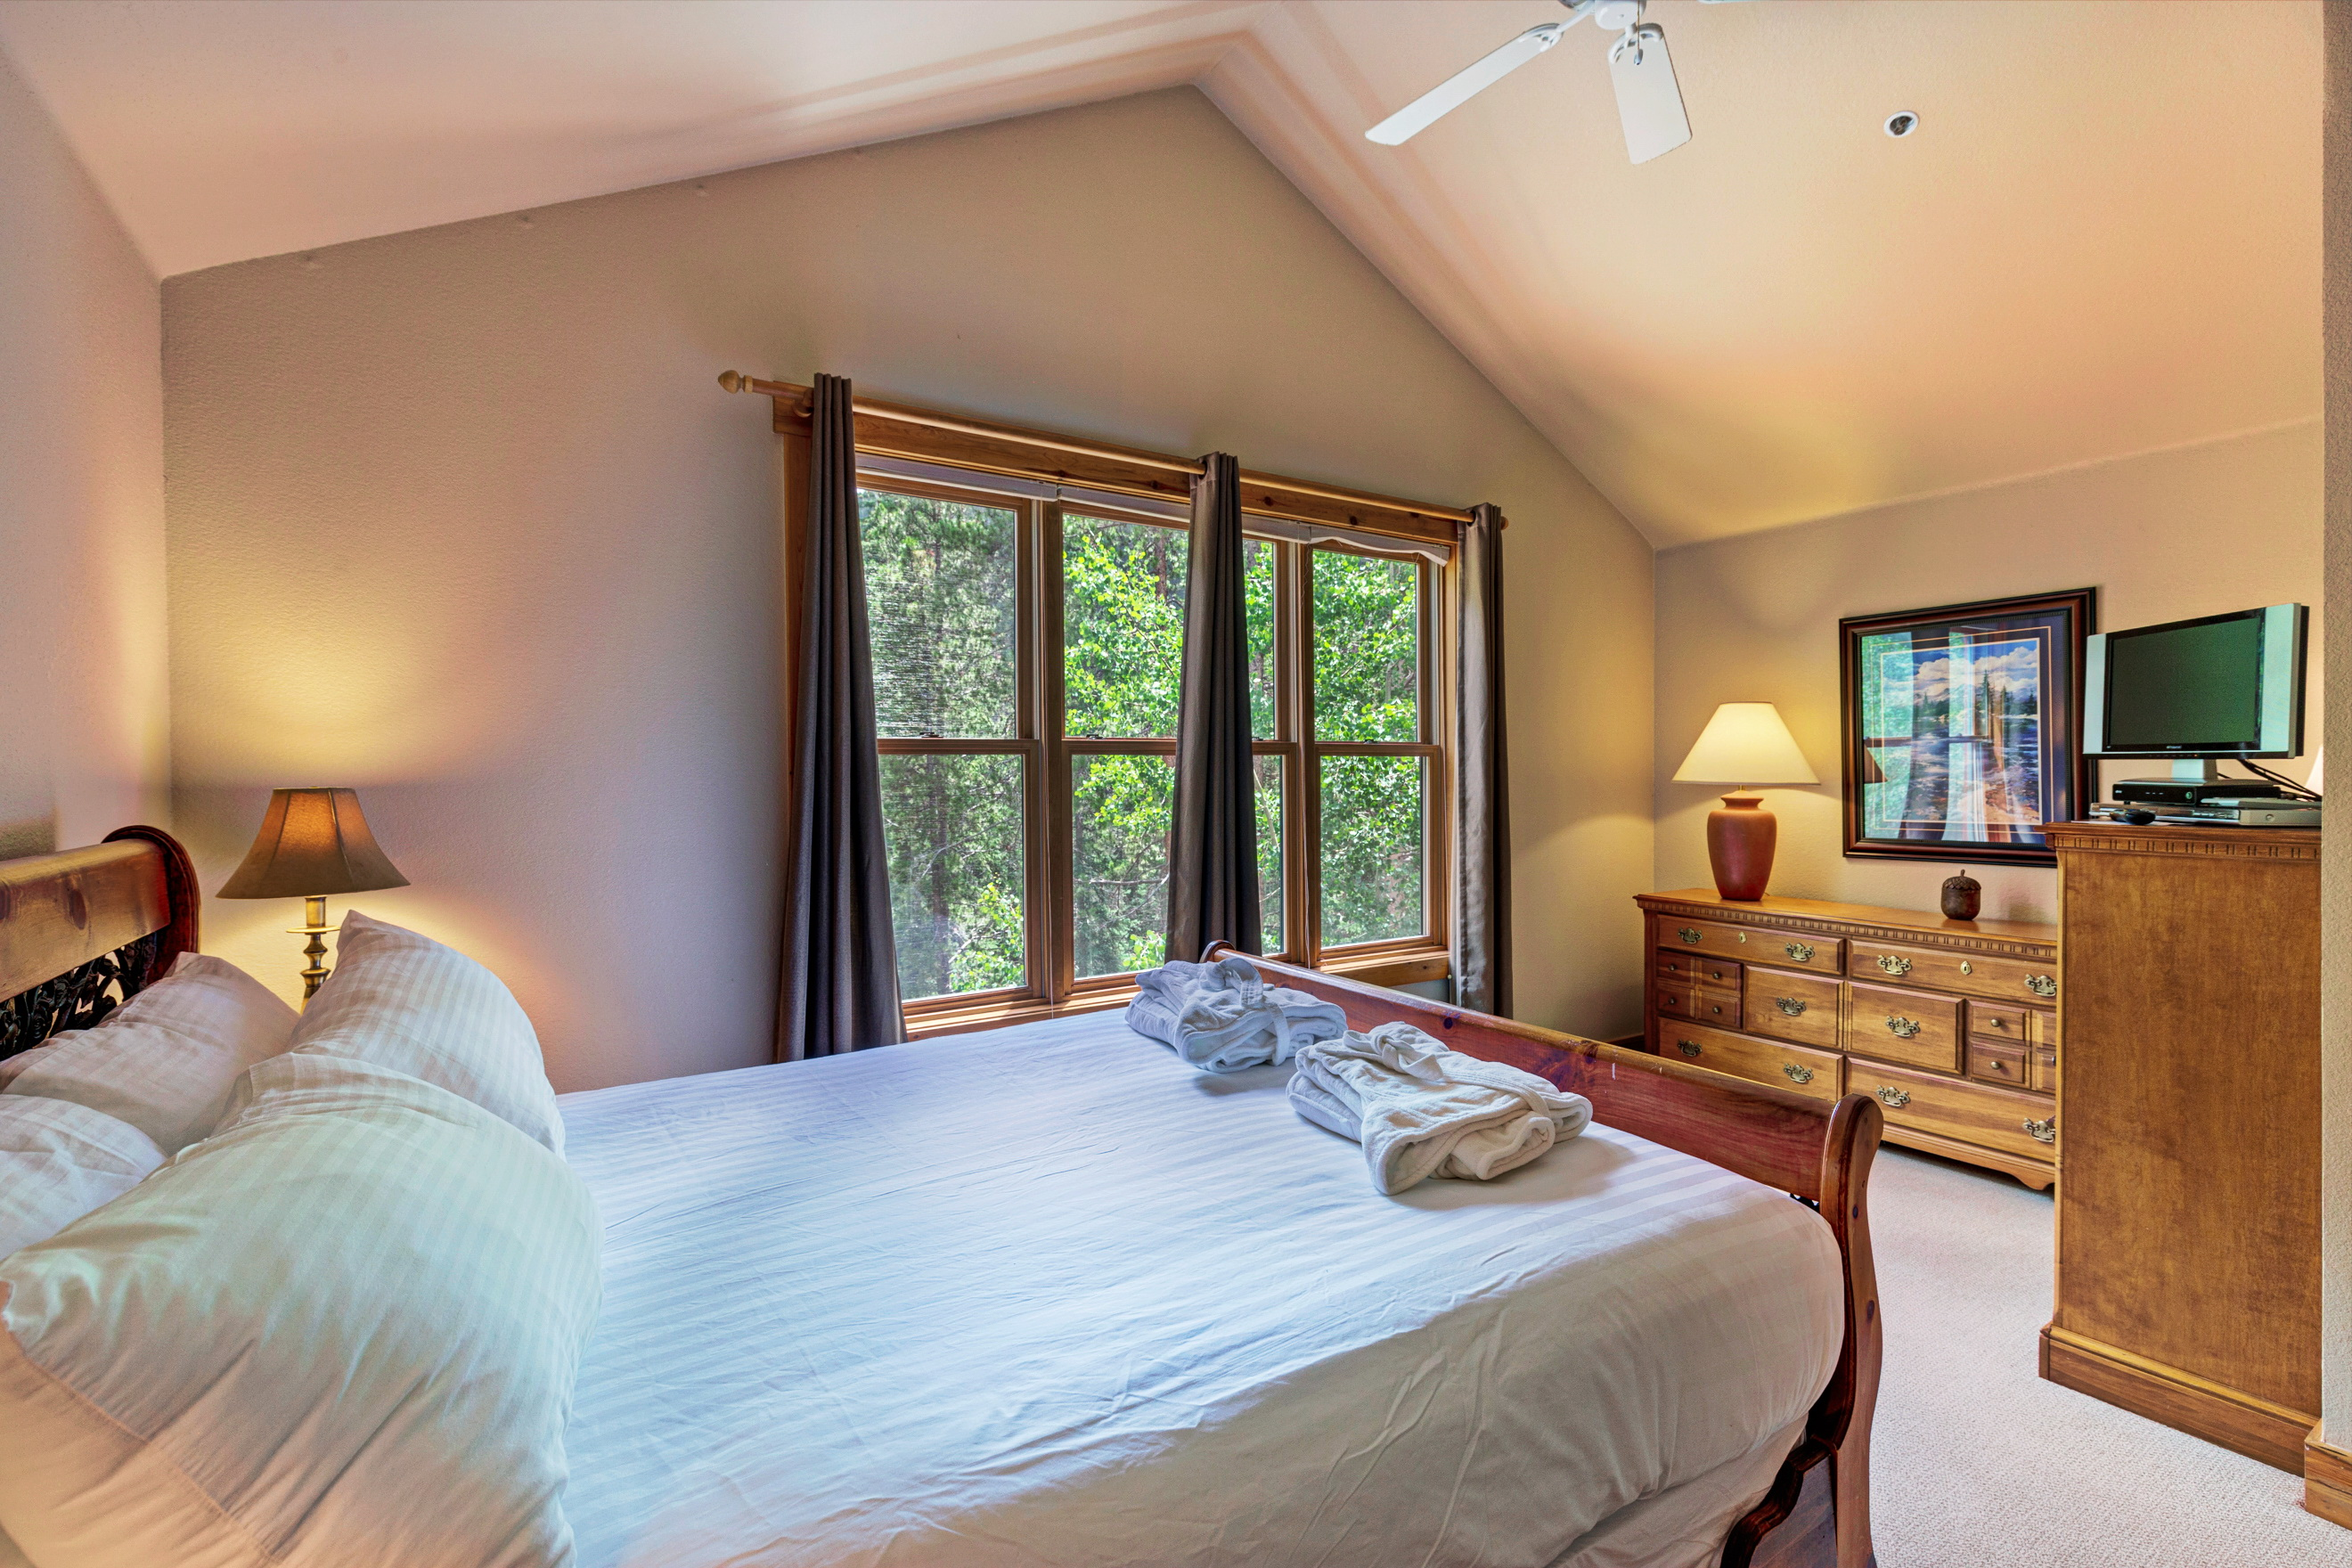 The master bedroom features a queen-sized bed with Ivory White Bedding and a flat screen TV as well as a seating area.